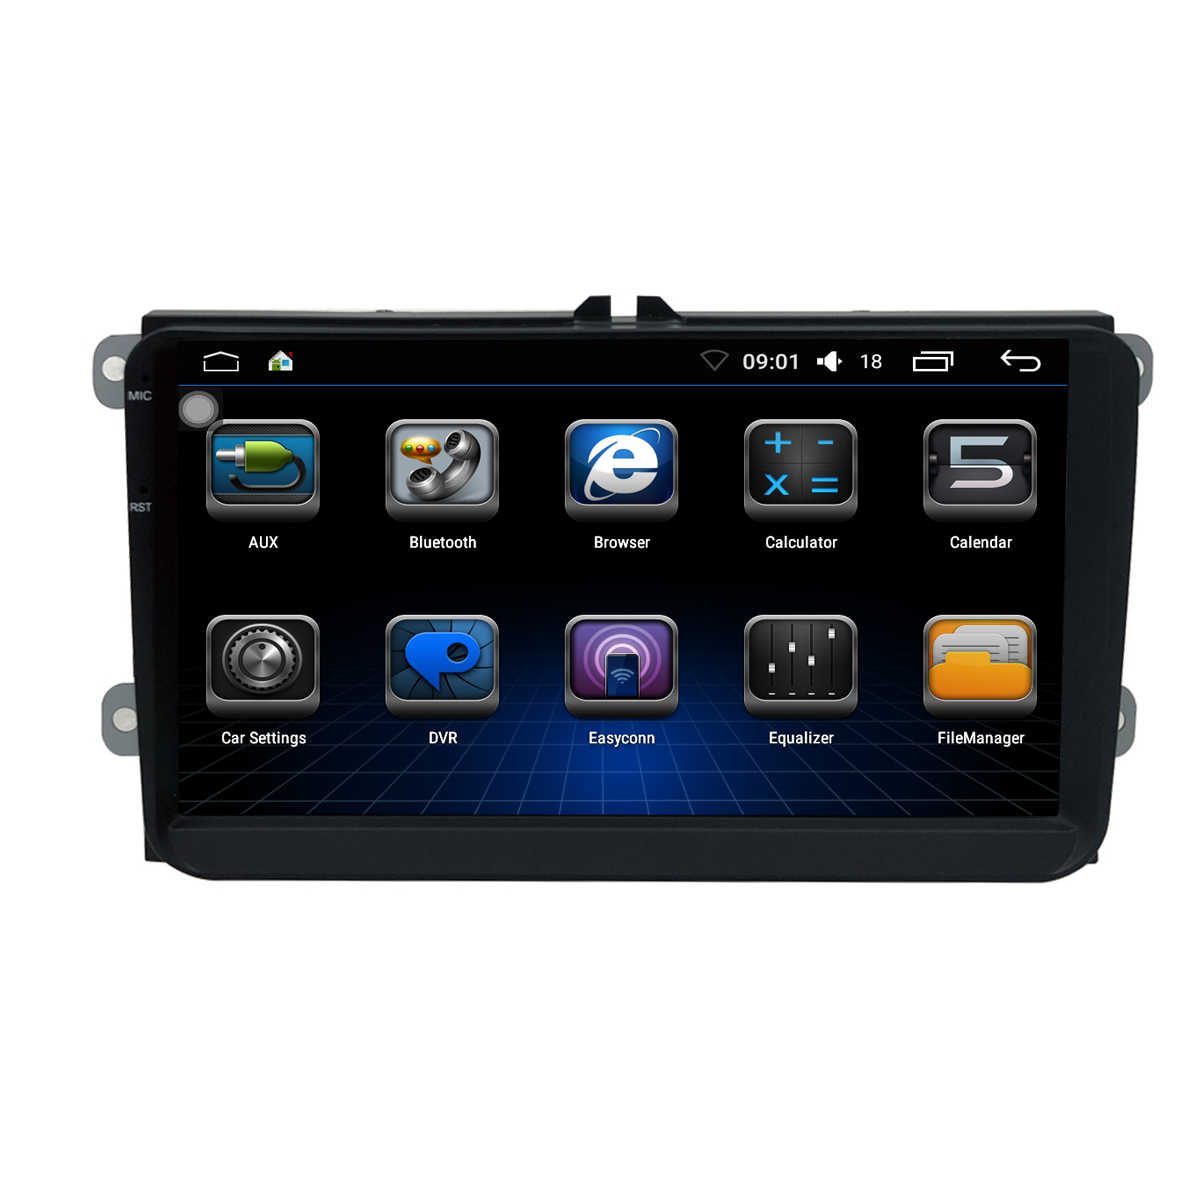 9inch Touch Screen Universal Android Car DVD Player for VW MAGOTAN with GPS Navigation Phone Link Wifi